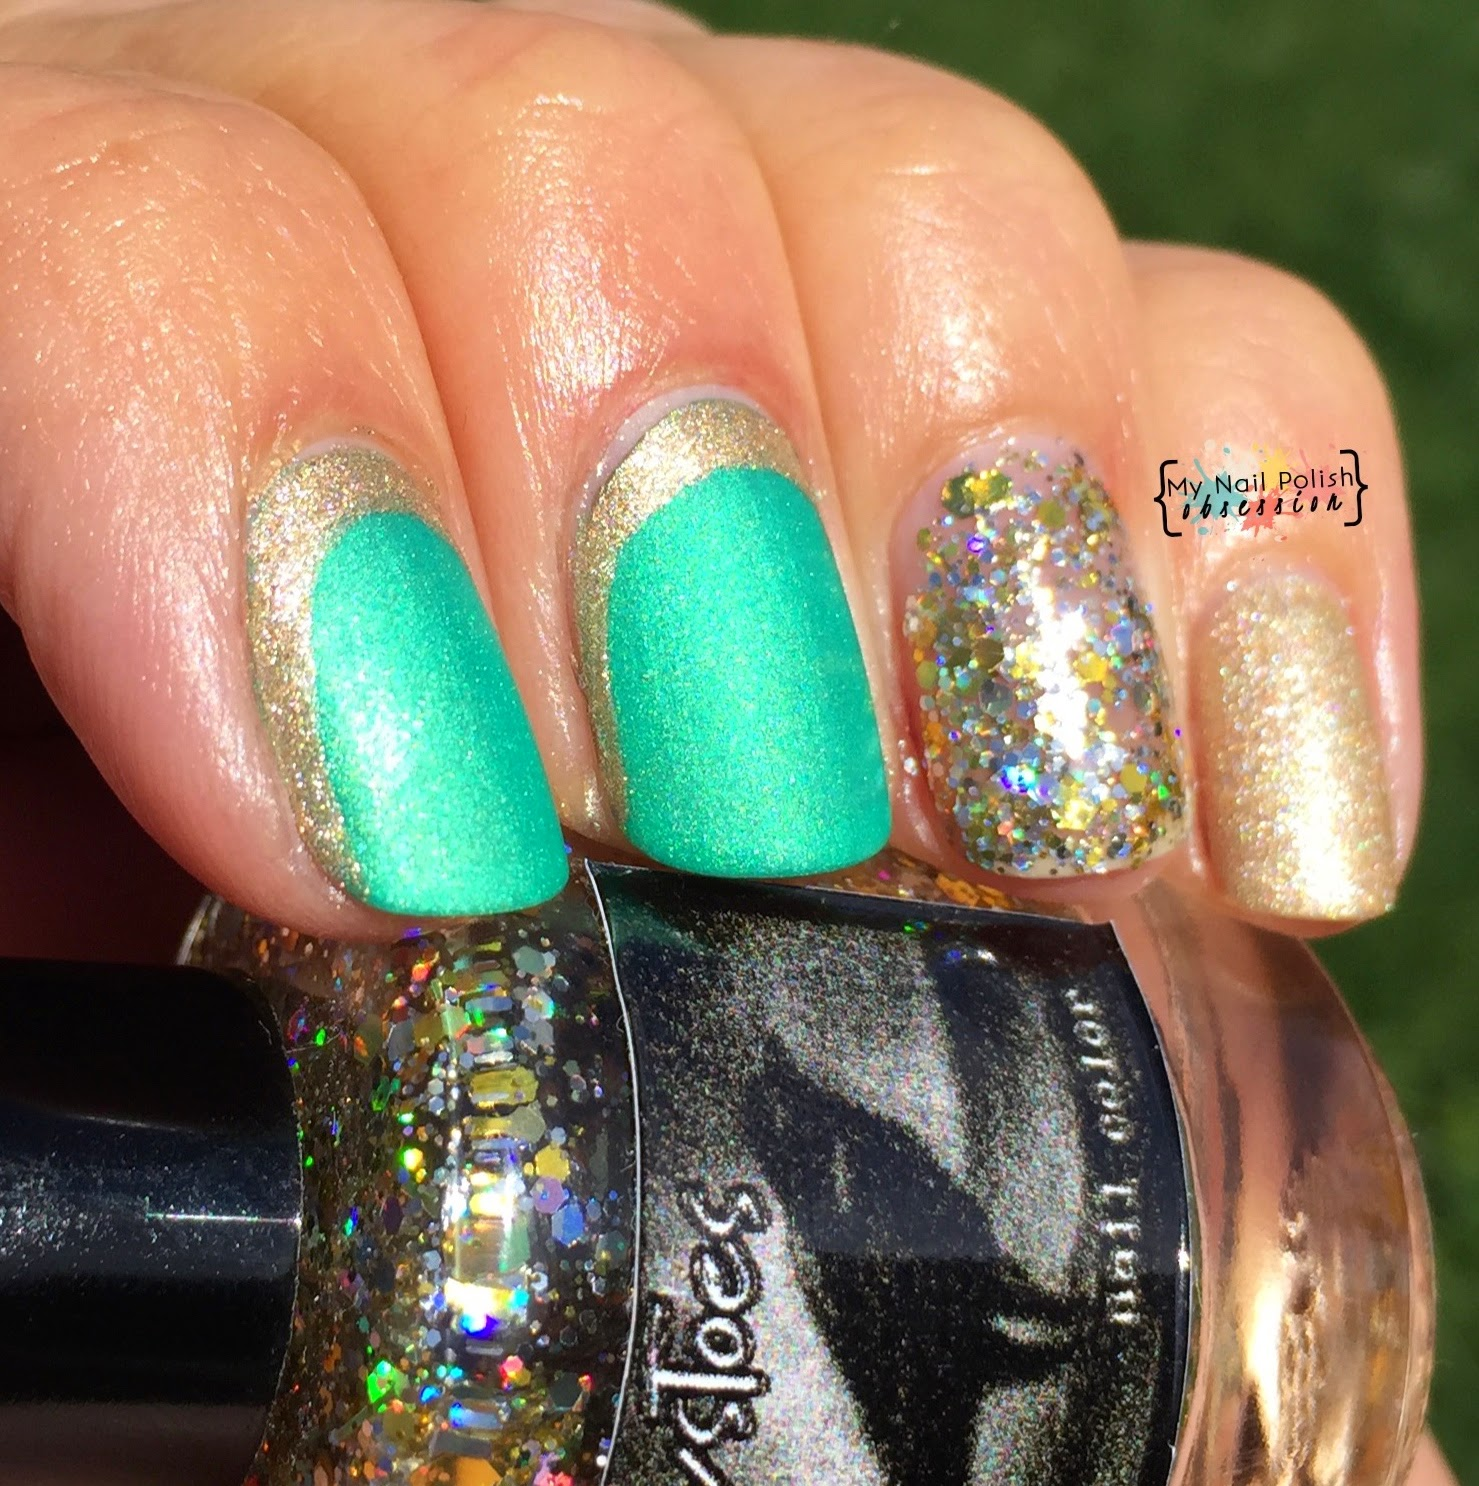 St. Patrick's Day Skittlette: Smitten Polish The Irish Rover, OPI Love Angel Music Baby, Crows Toes Maxxed Out